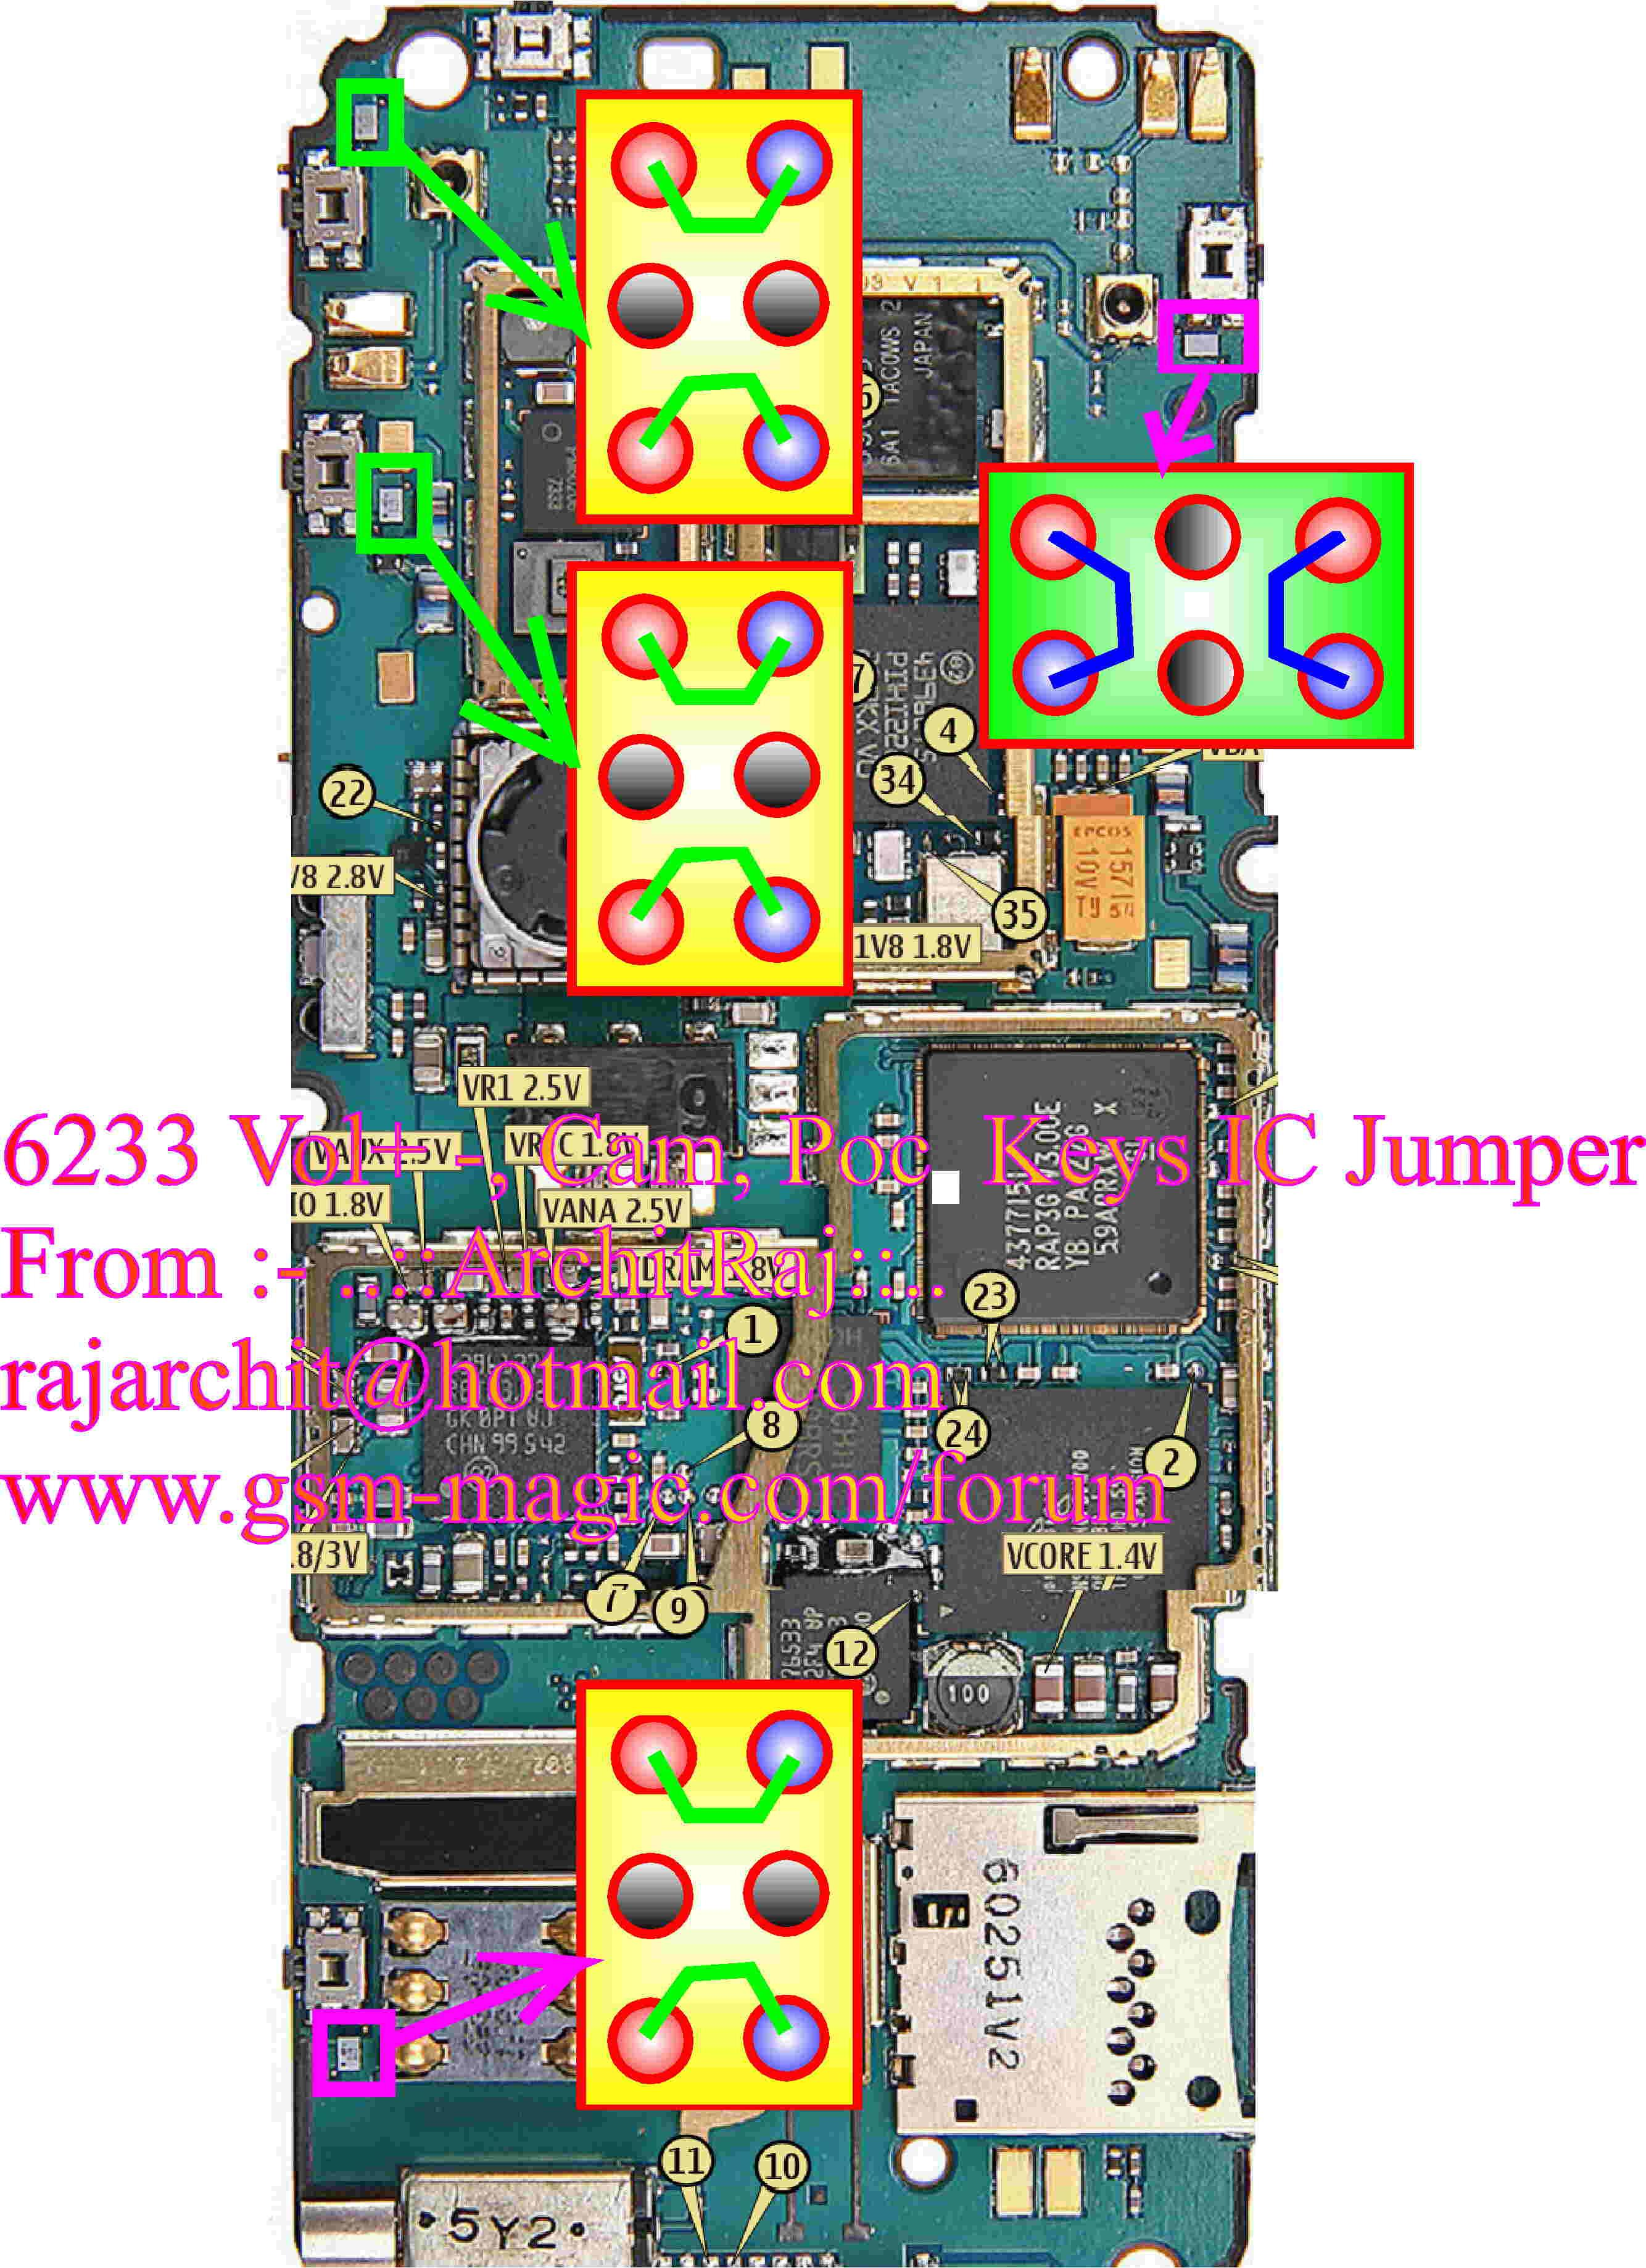 you have to remove the ic and make jumpers as given in the image